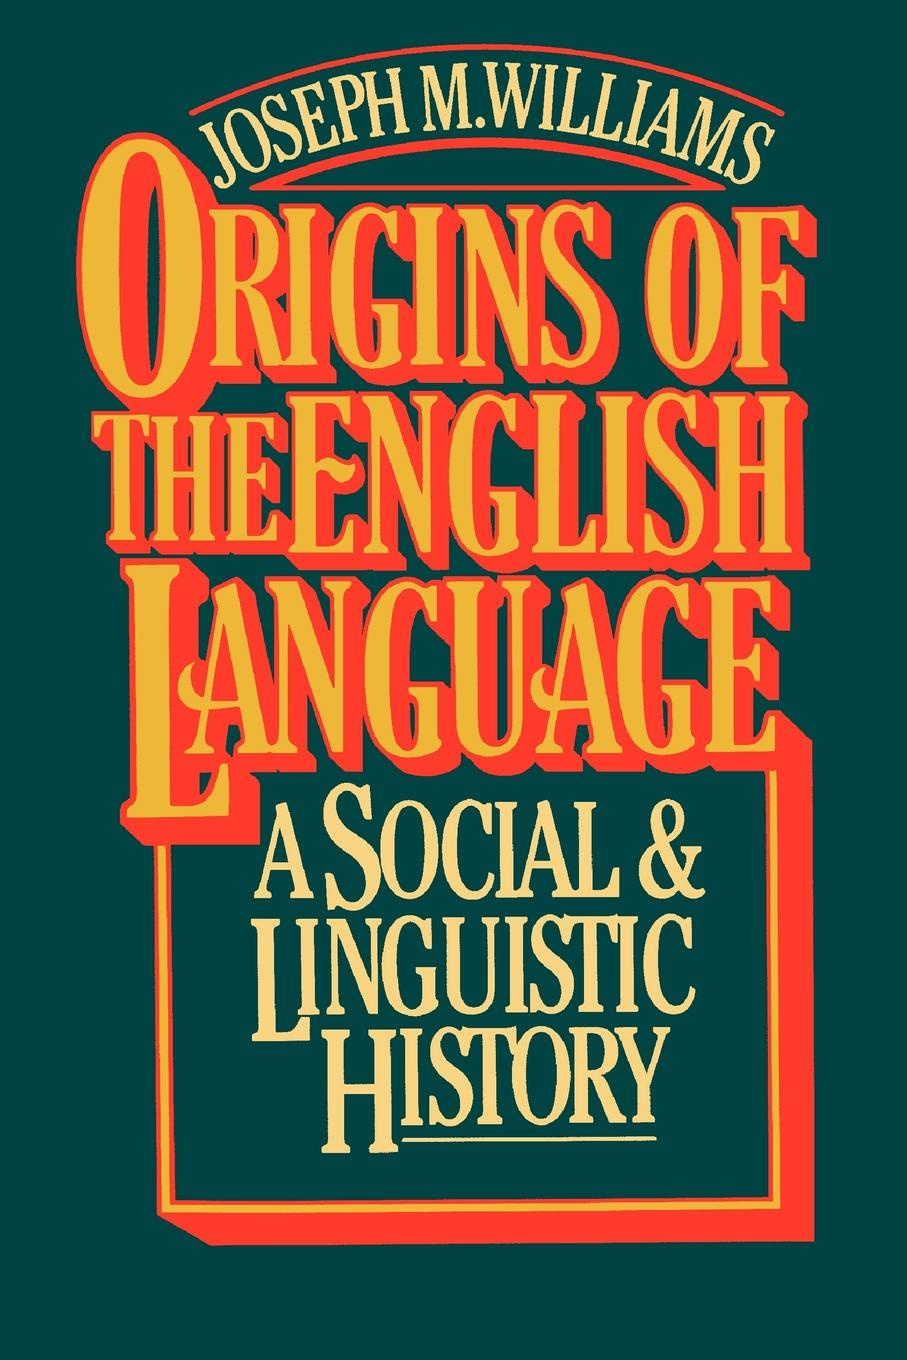 Joseph M. Williams Origins of the English Language. A Social and Linguistic History english language and bilingualism